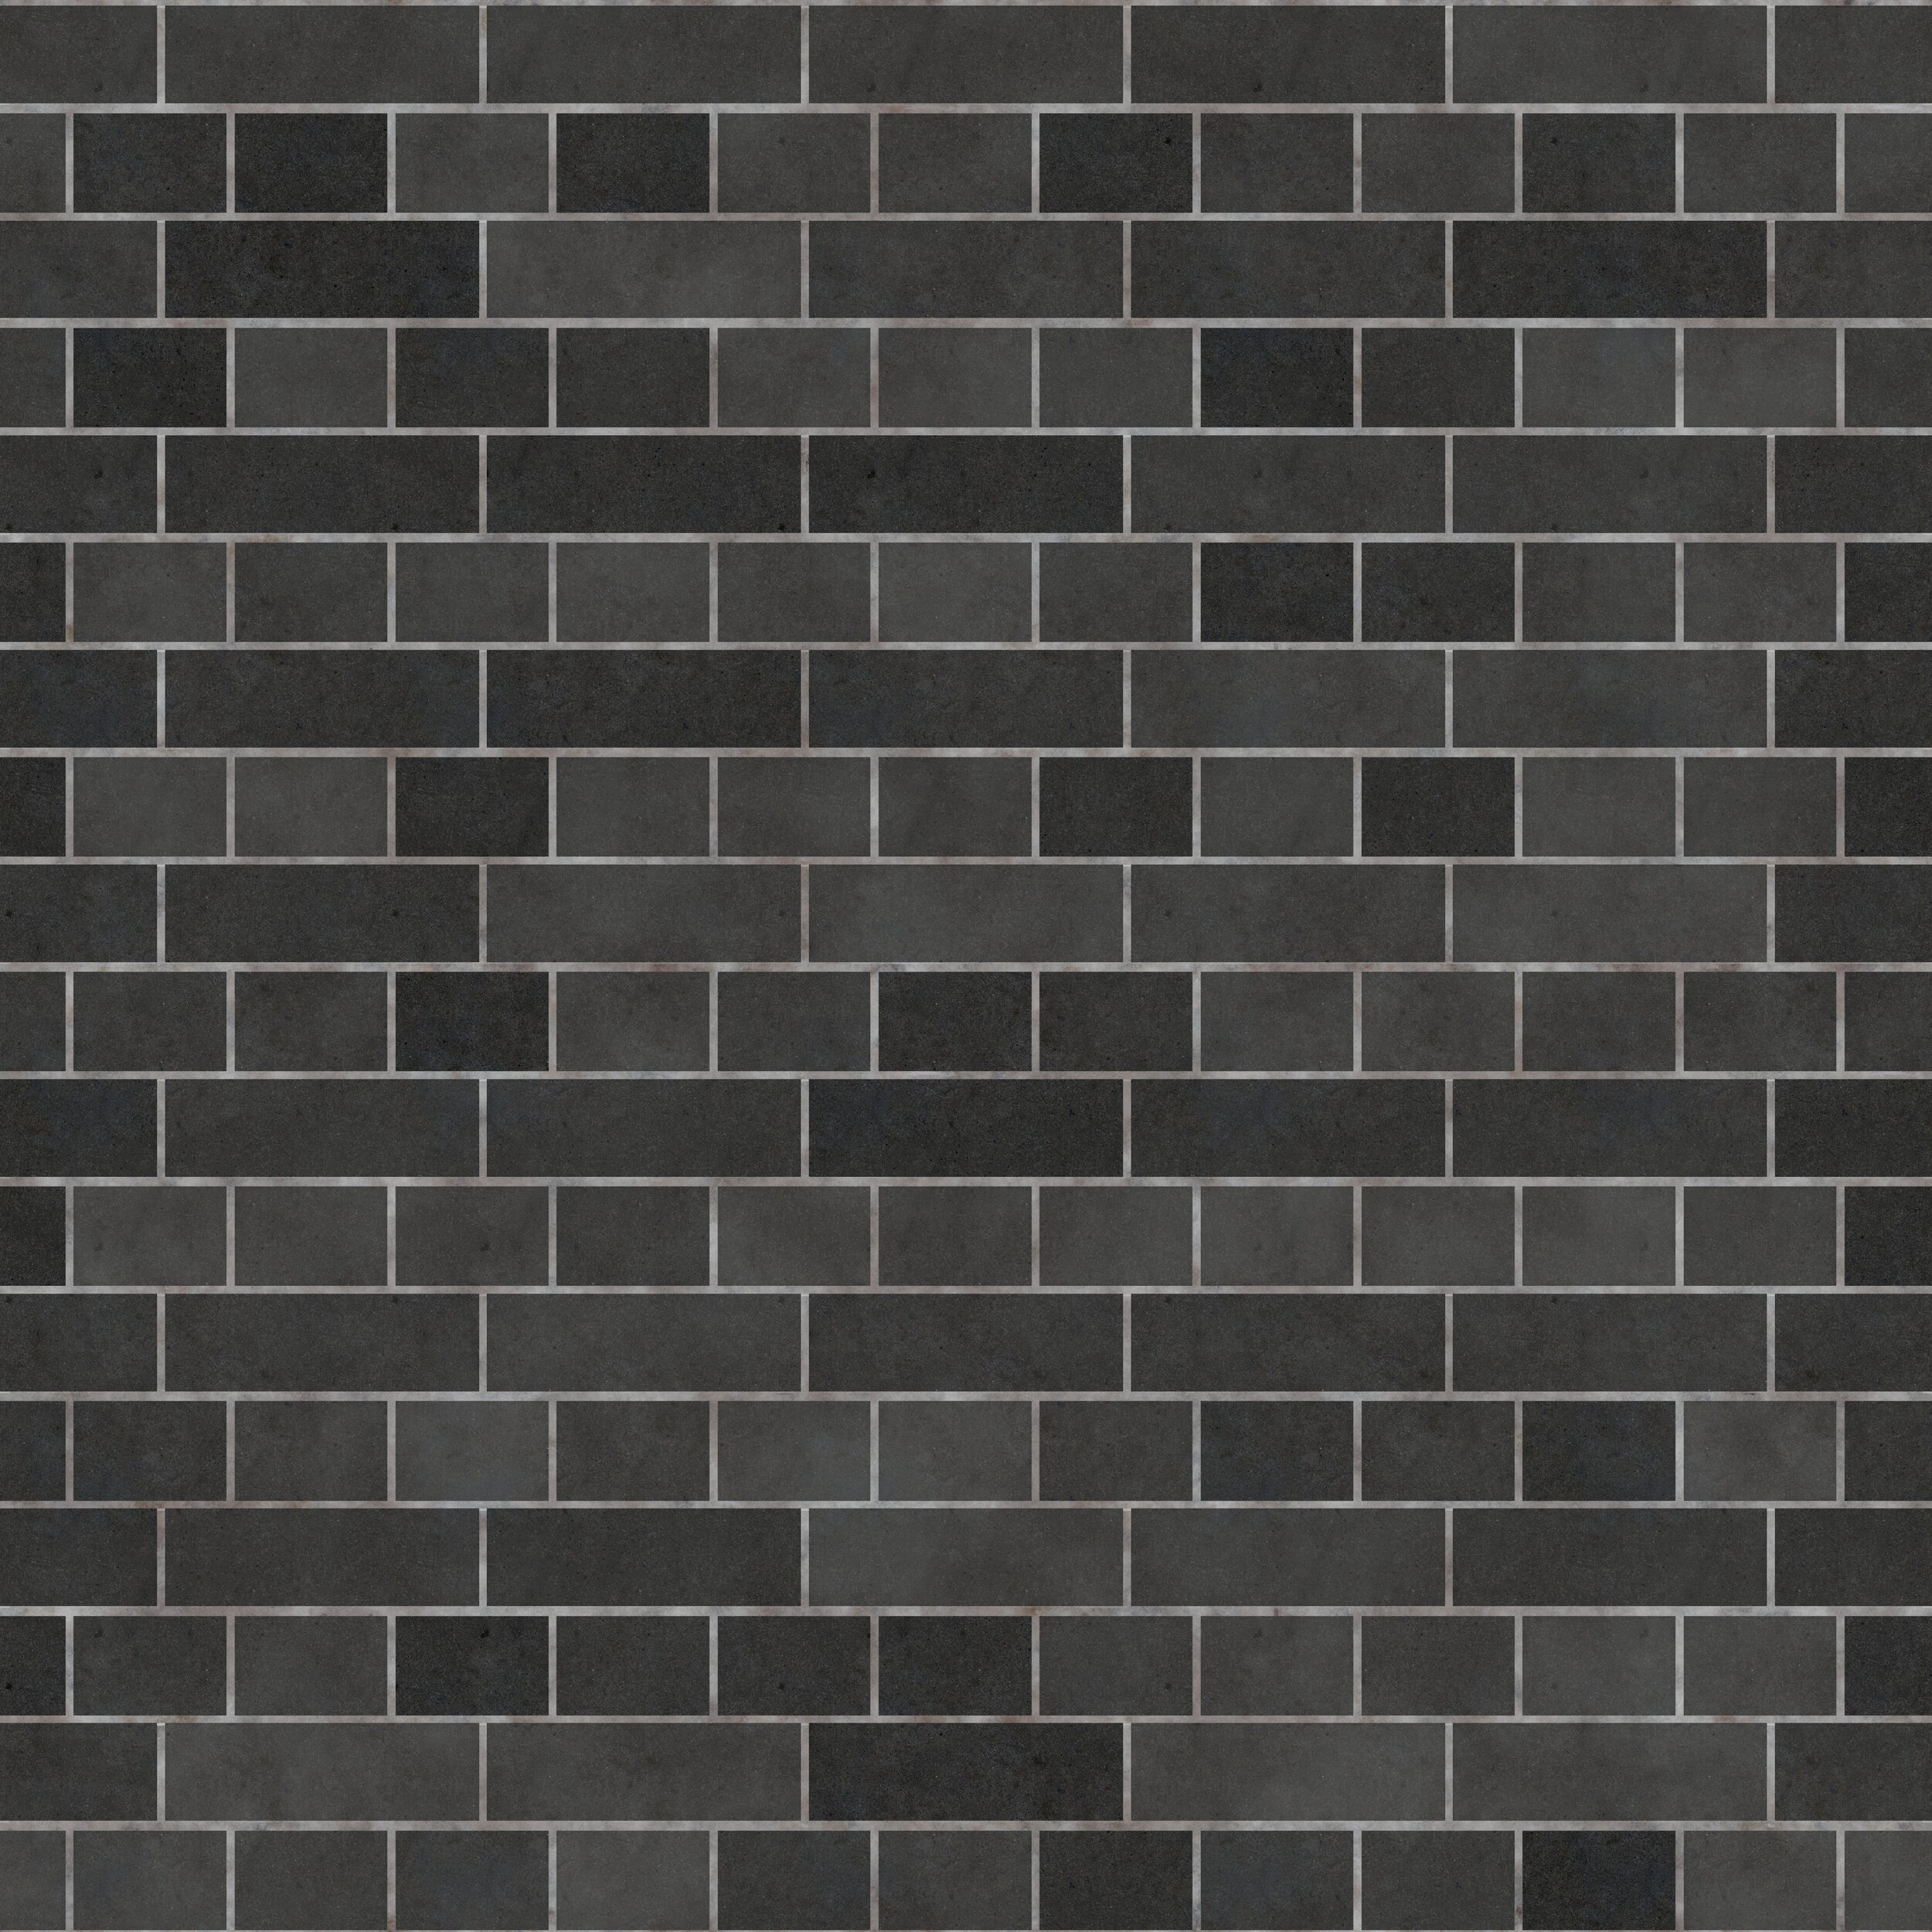 Bricks_AI_01C_Gray_COLOR.jpg